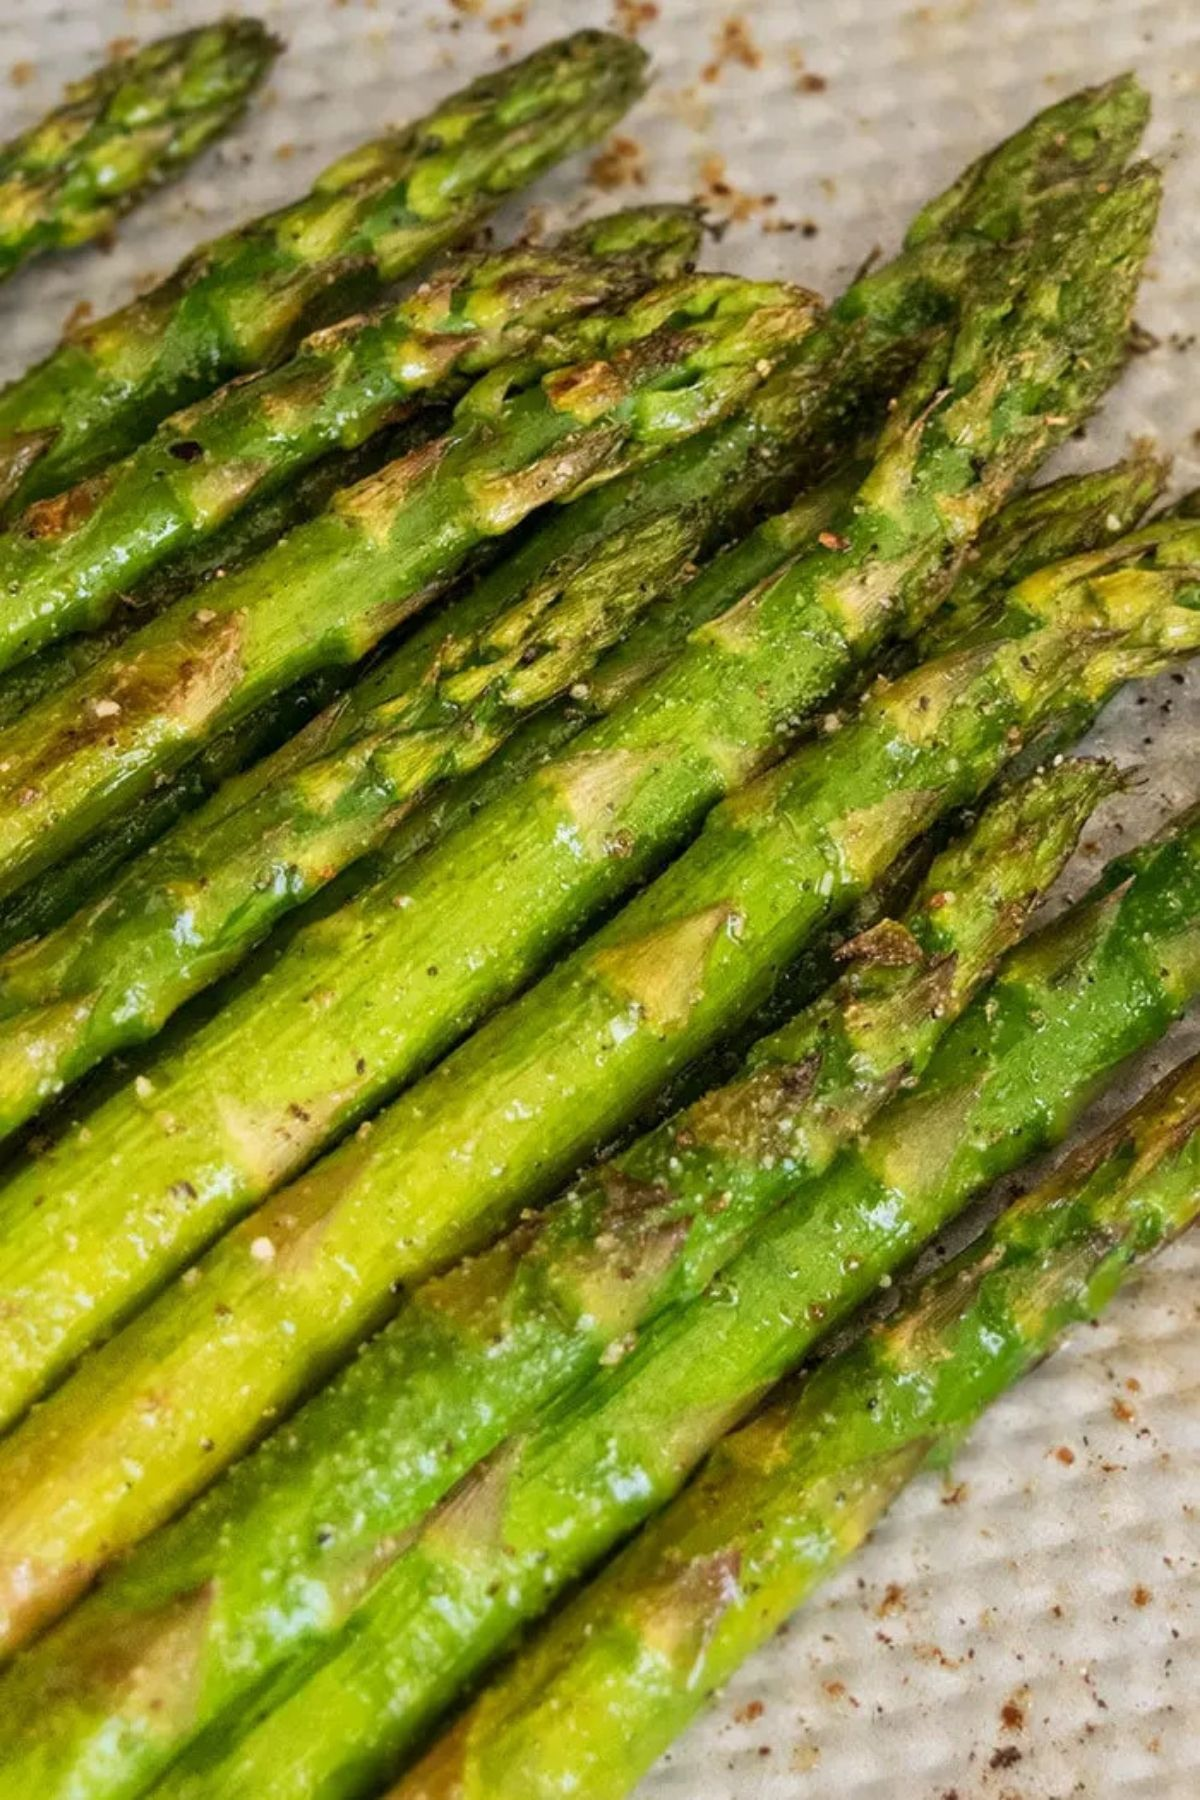 Stacked asparagus on paper towel